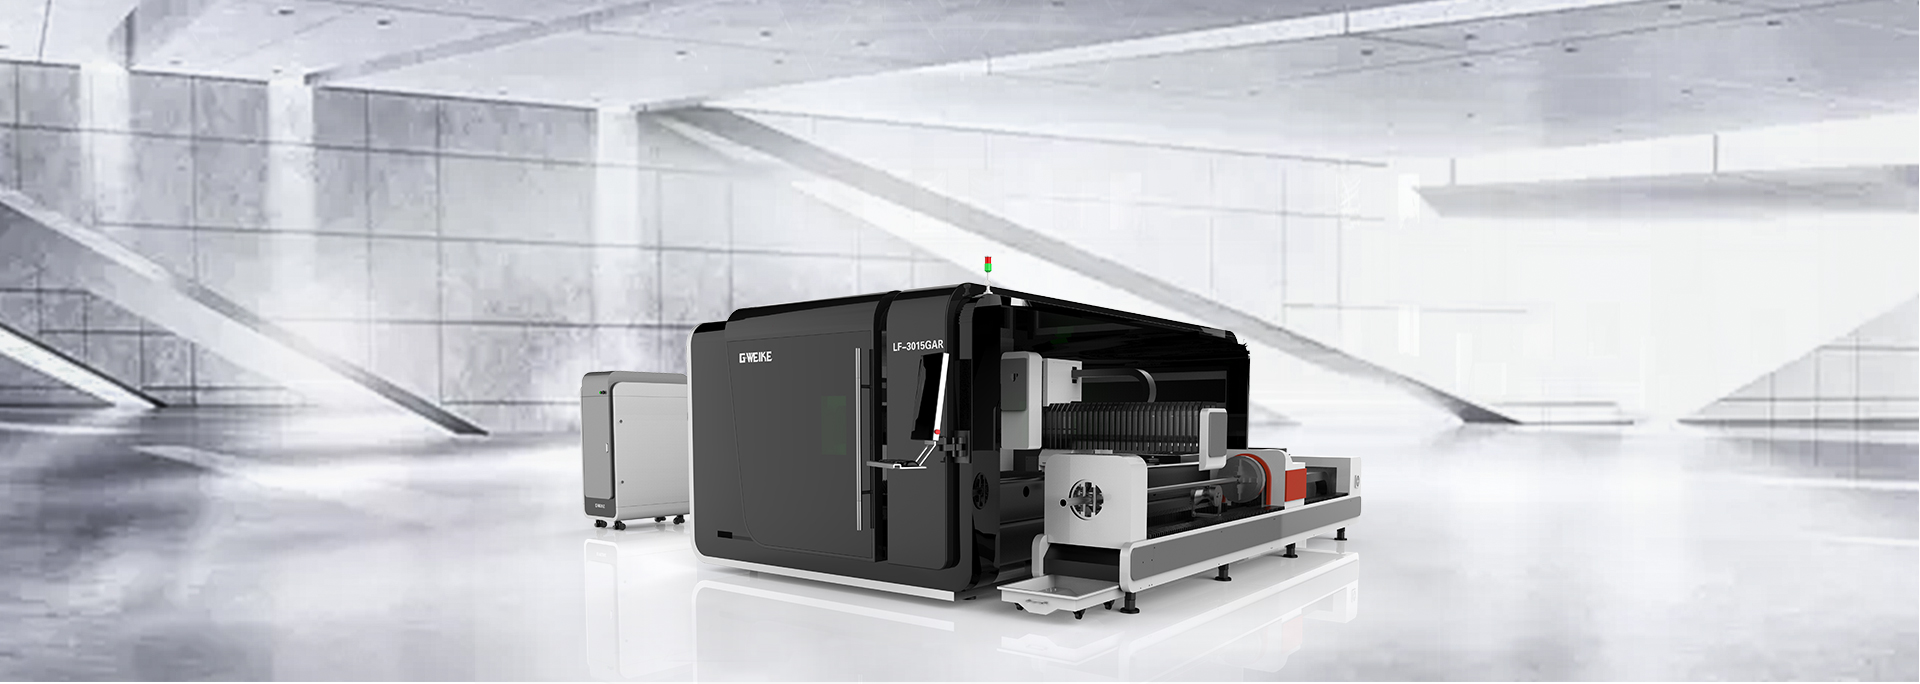 LF3015GAR WHOLE COVER FIBER LASER CUTTING MACHINE